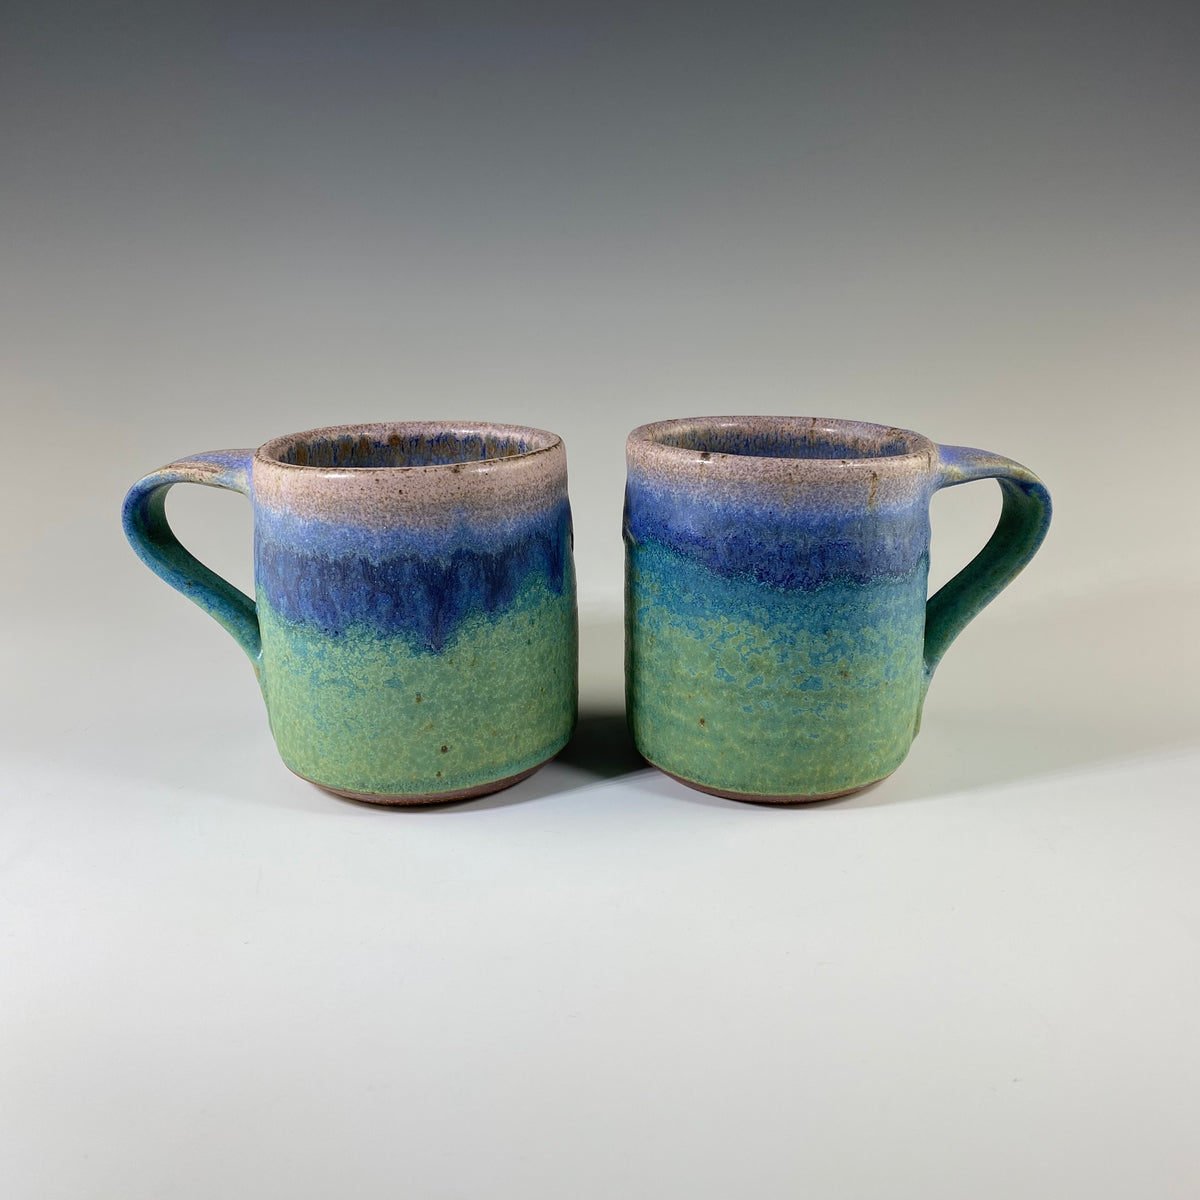 Demitasse Cup in Turquoise & Lavender - Heart of the Home PA